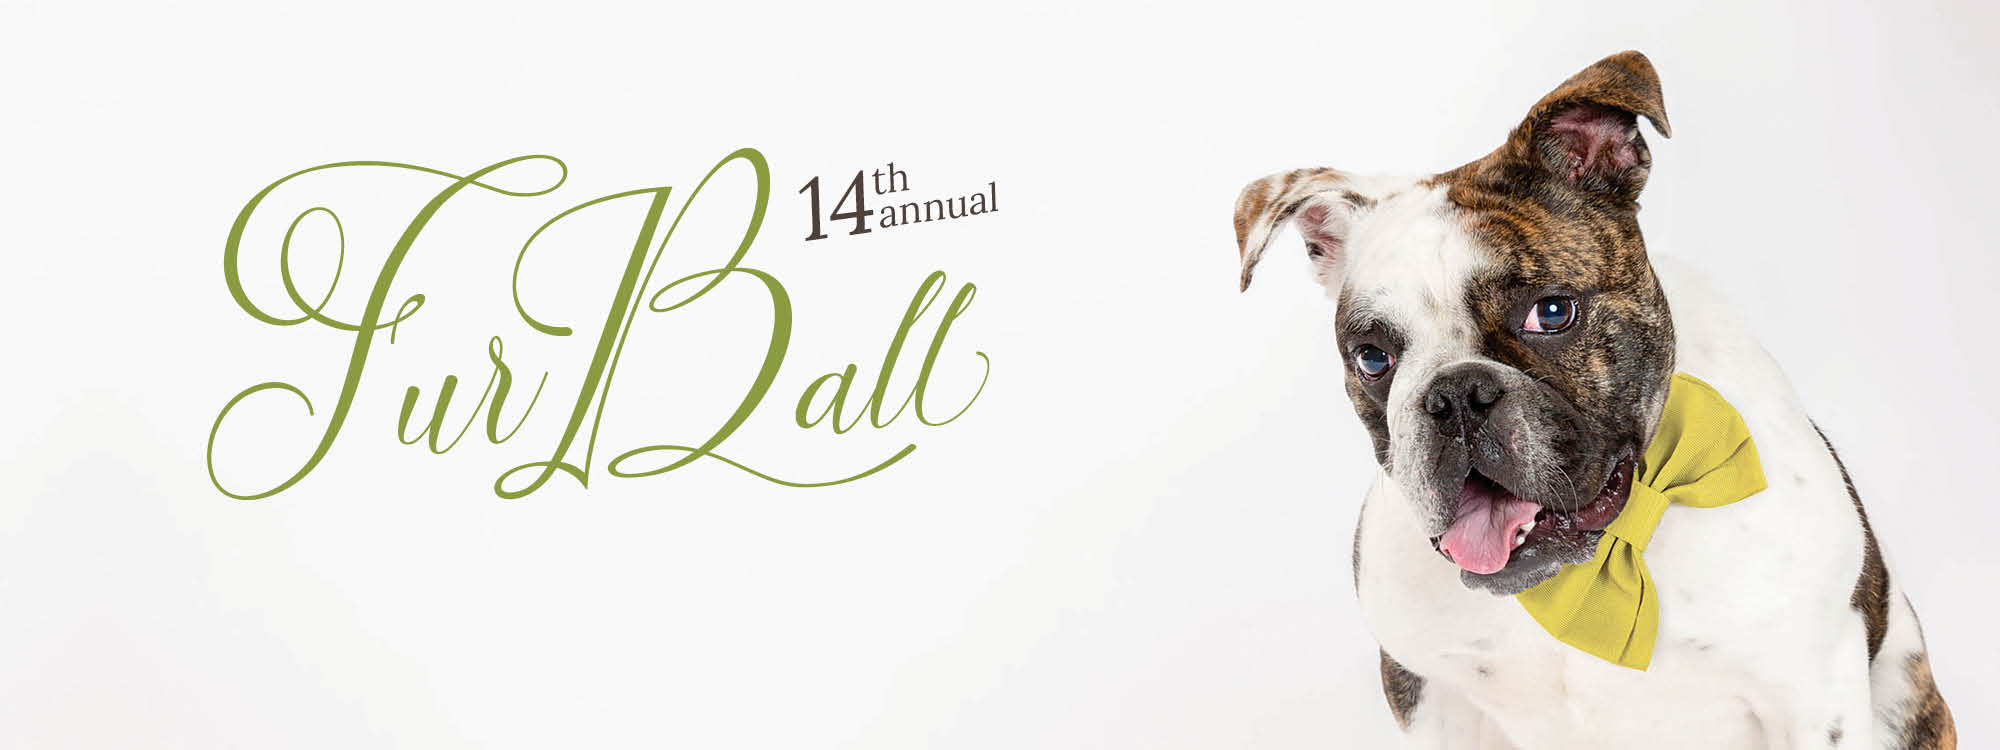 Bulldog in yellow bowtie with 14th annual fur ball text